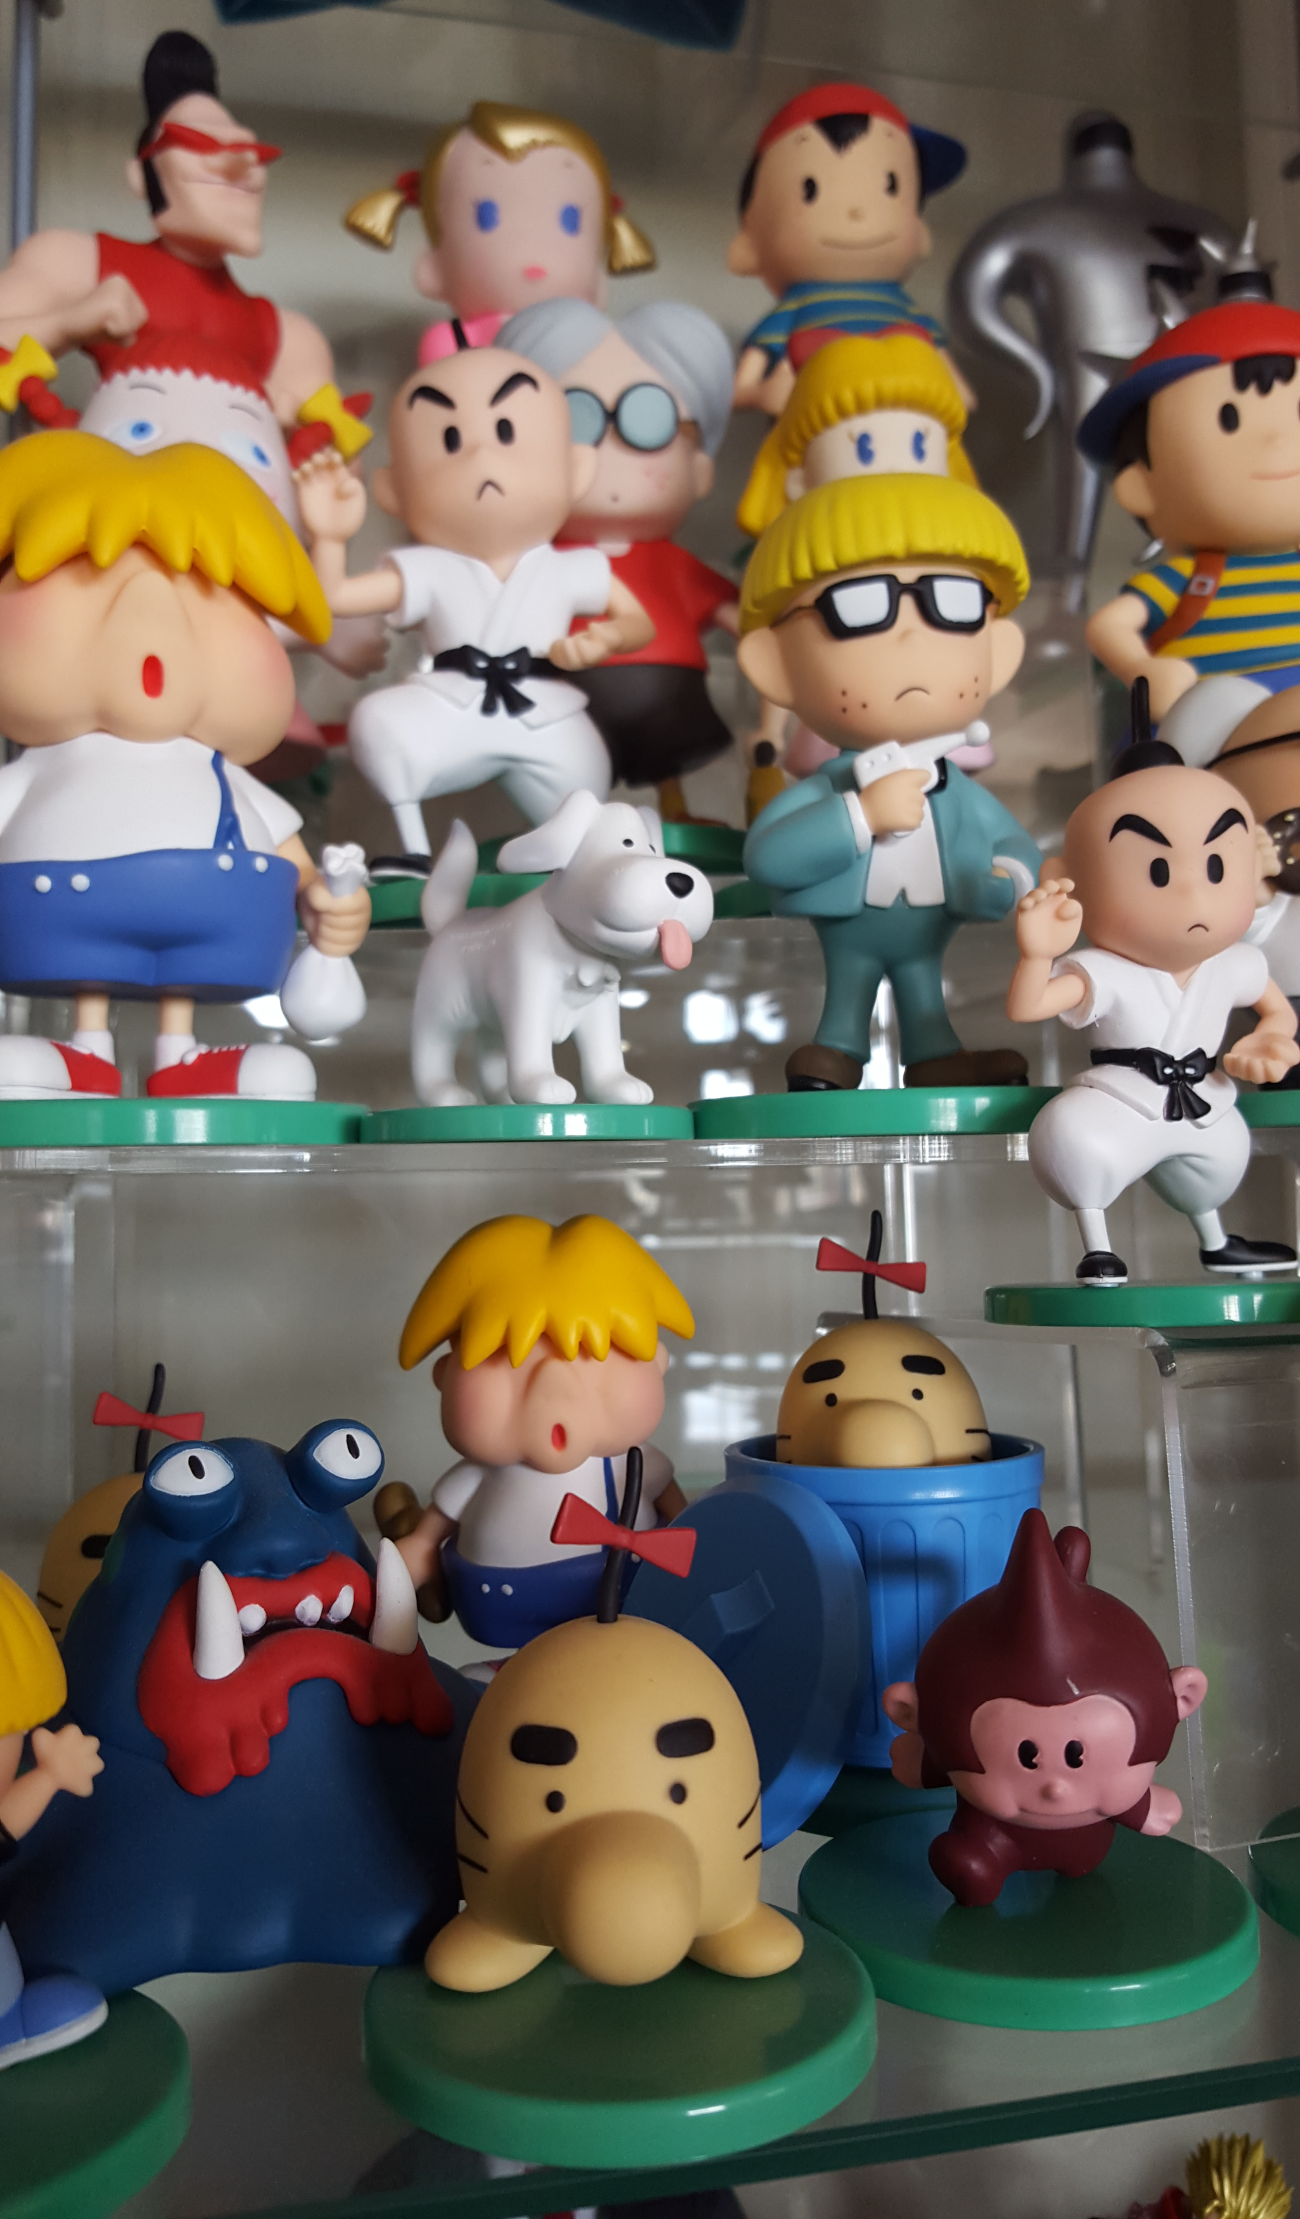 Geeky Shit Mother Earthbound Series Figures By